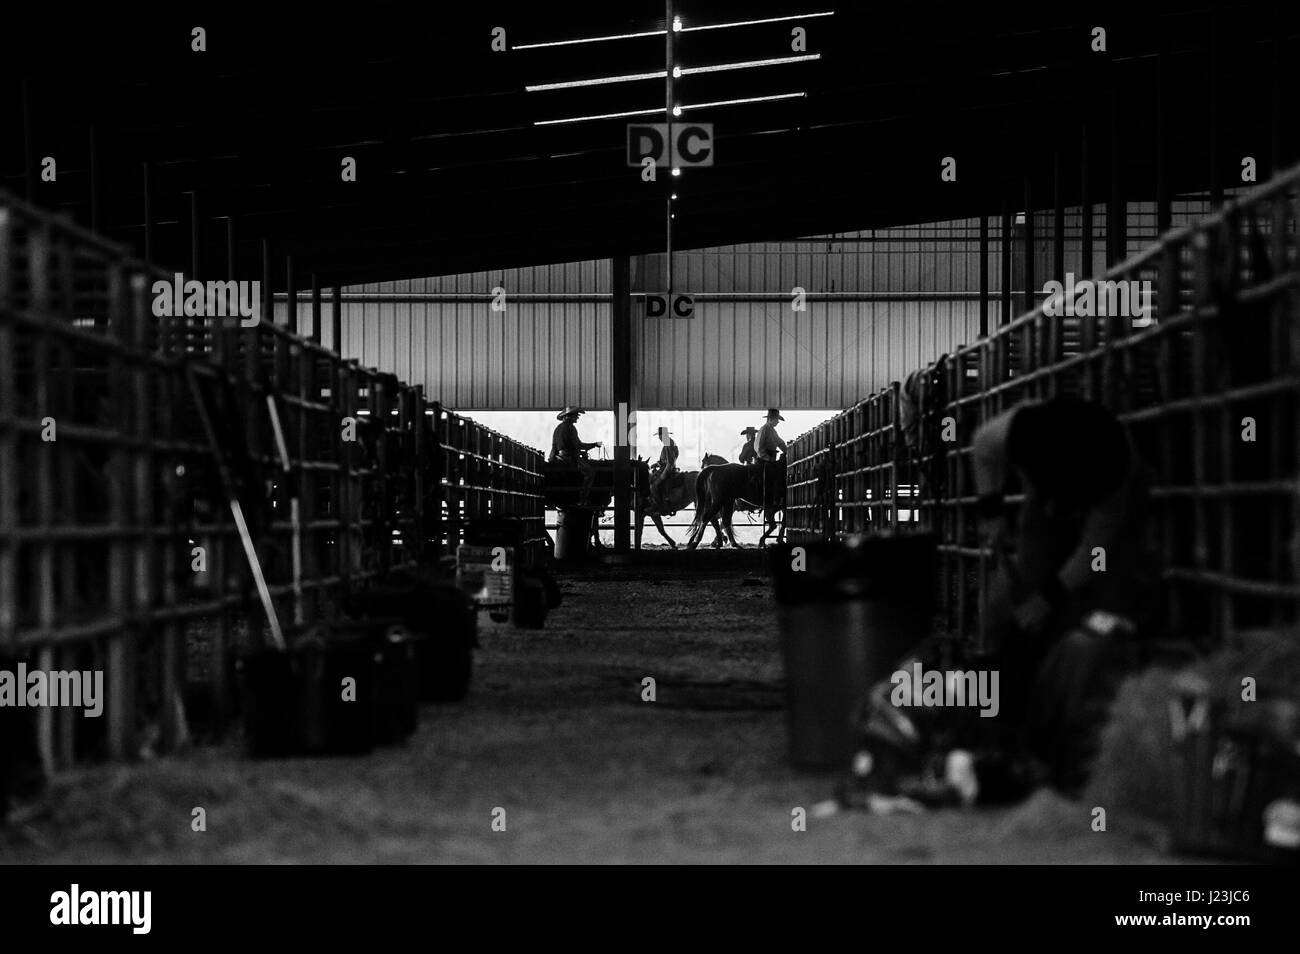 Salado, Texas, USA. Cowboy Mounted Shooting Event Texas. Riders silhouette before the competition during the warmup. - Stock Image